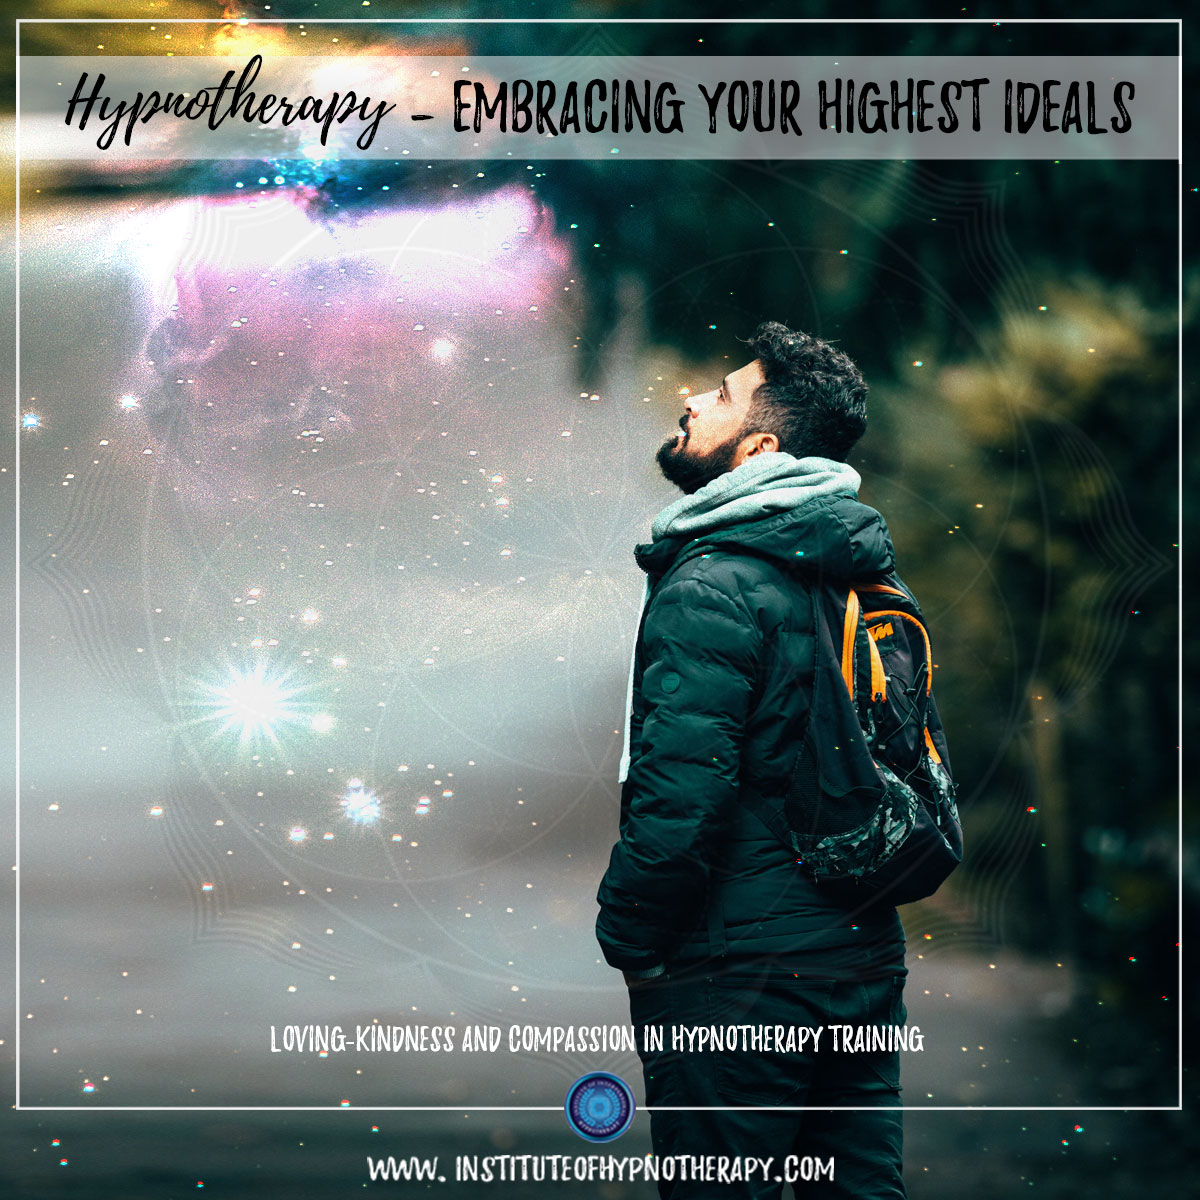 Hypnotherapy – Embracing Your Highest Ideals